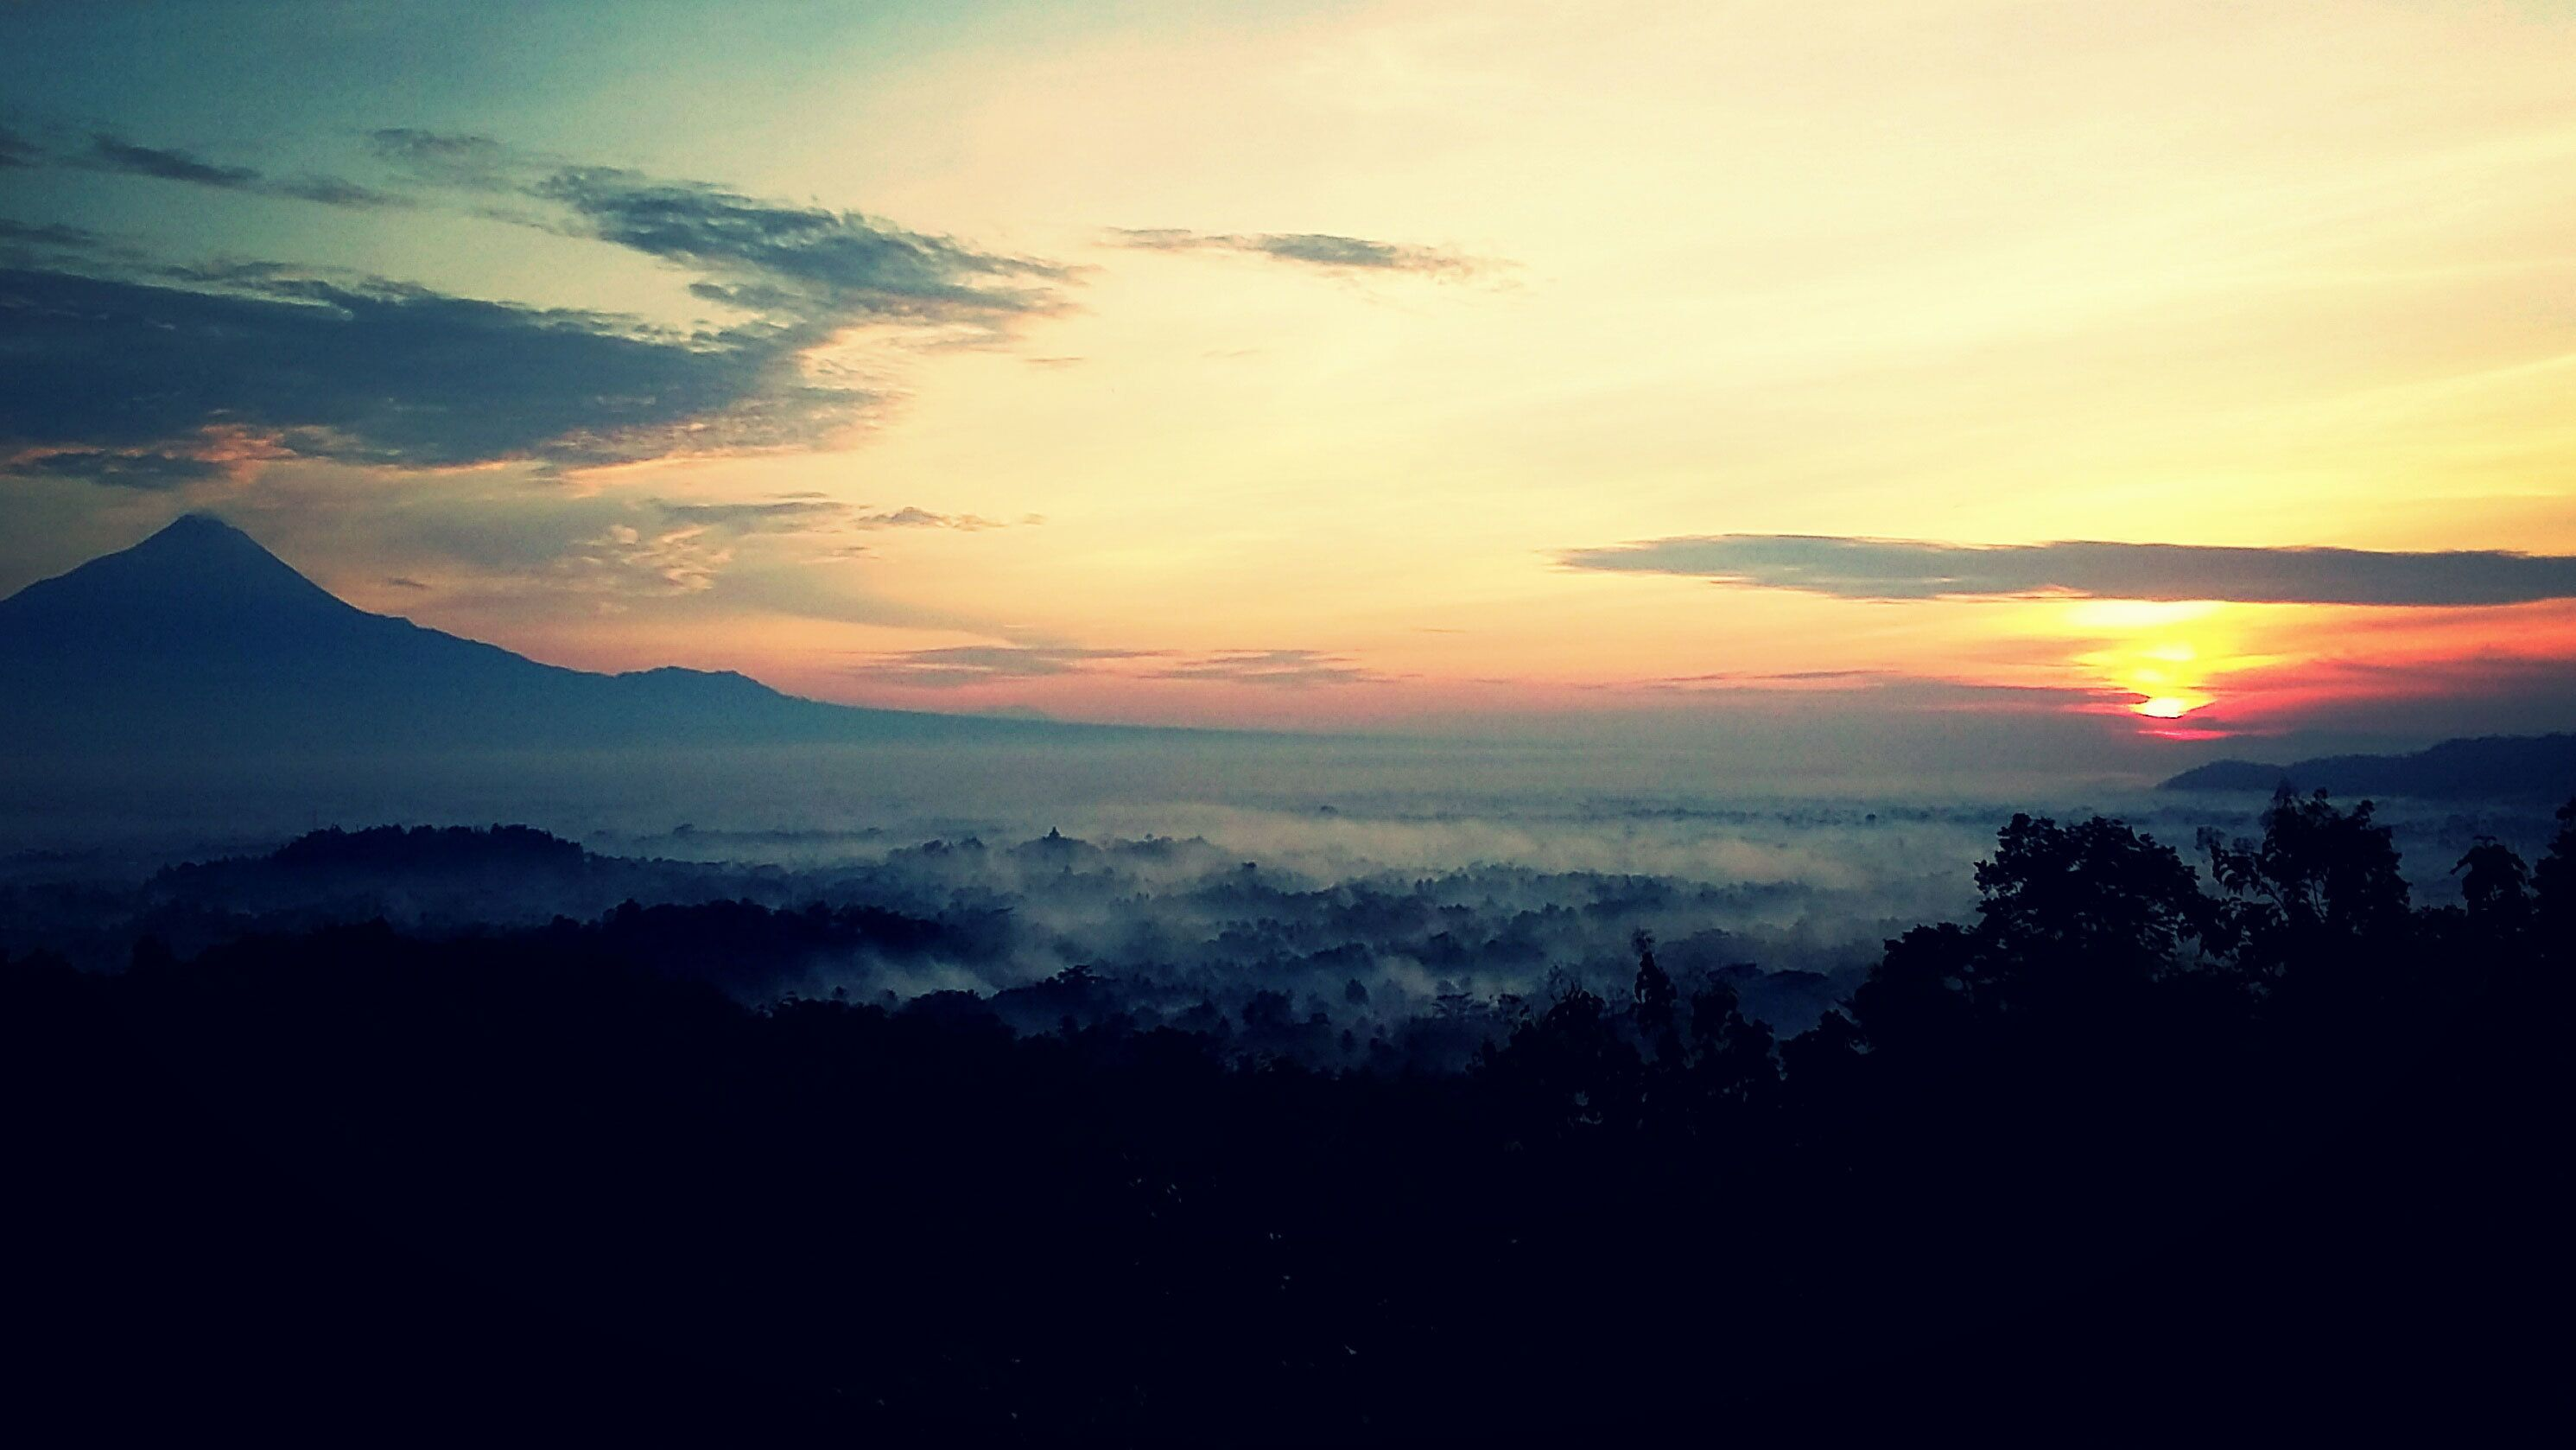 Early morning fog over the trees with mountains in the distance at sunrise in Yogyakarta